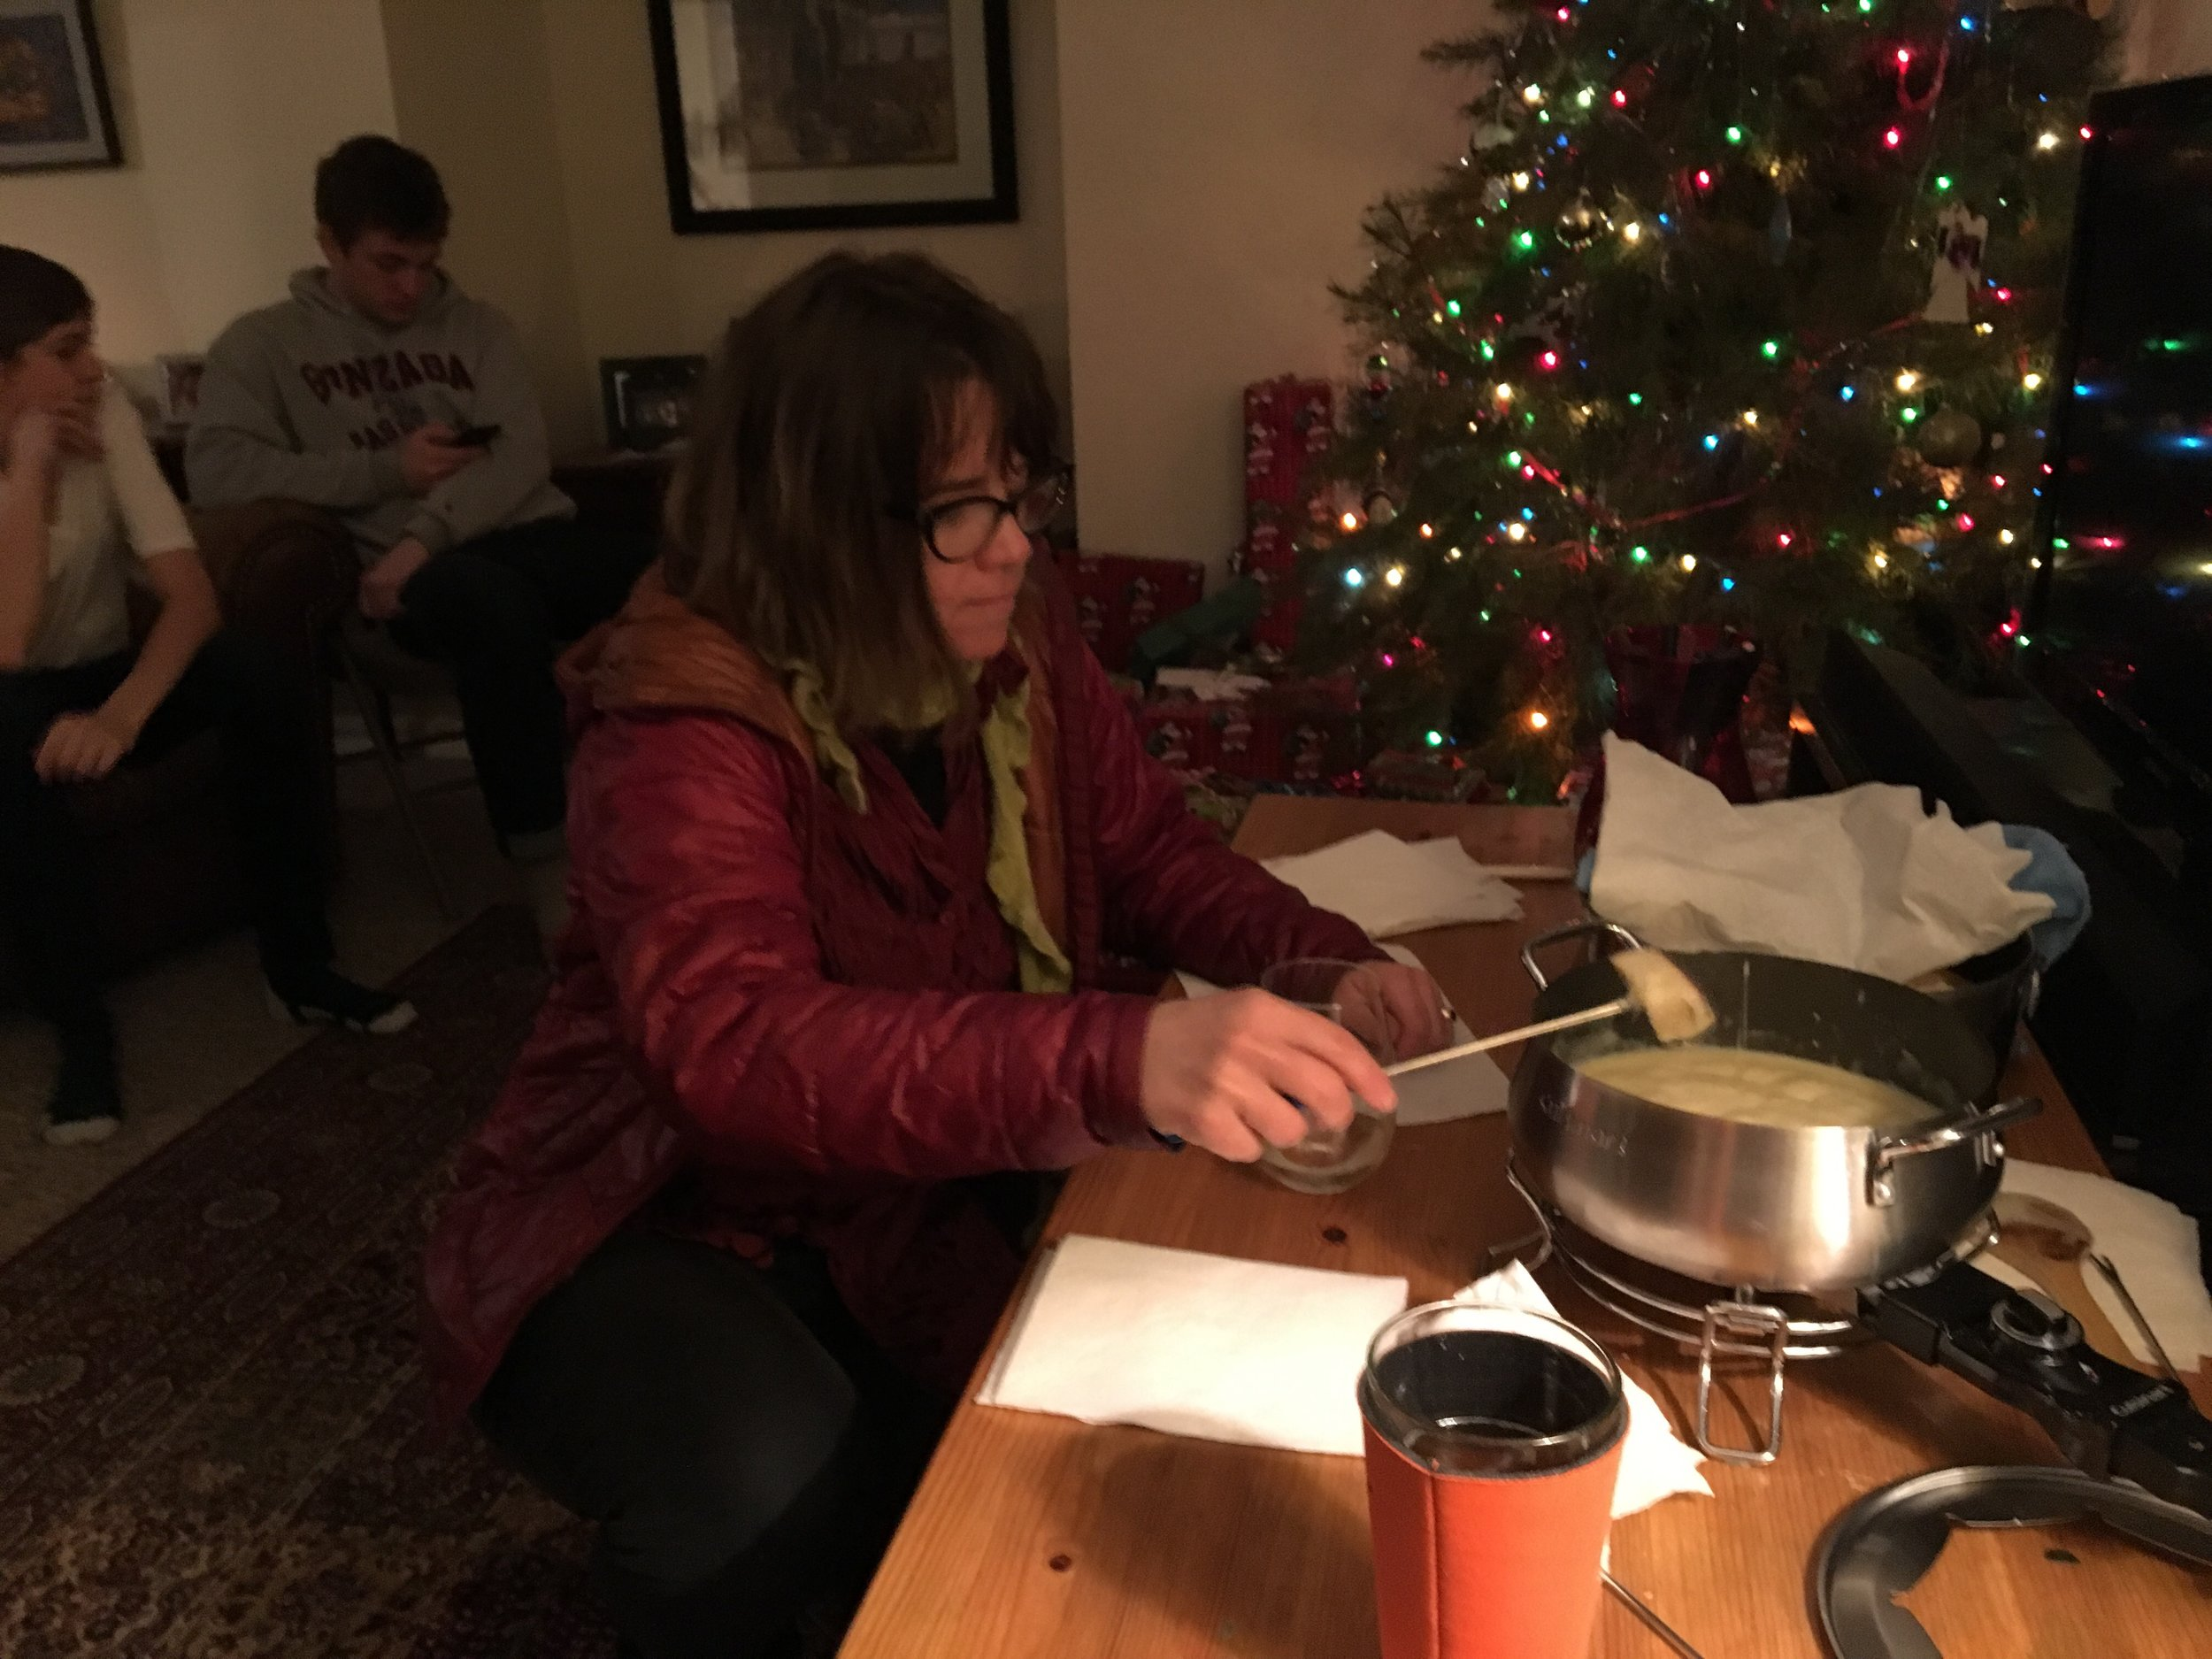 - Fondue is the tradition of Ron and Jan's family. That's Jenny dipping her piece of bread into the melted cheese.